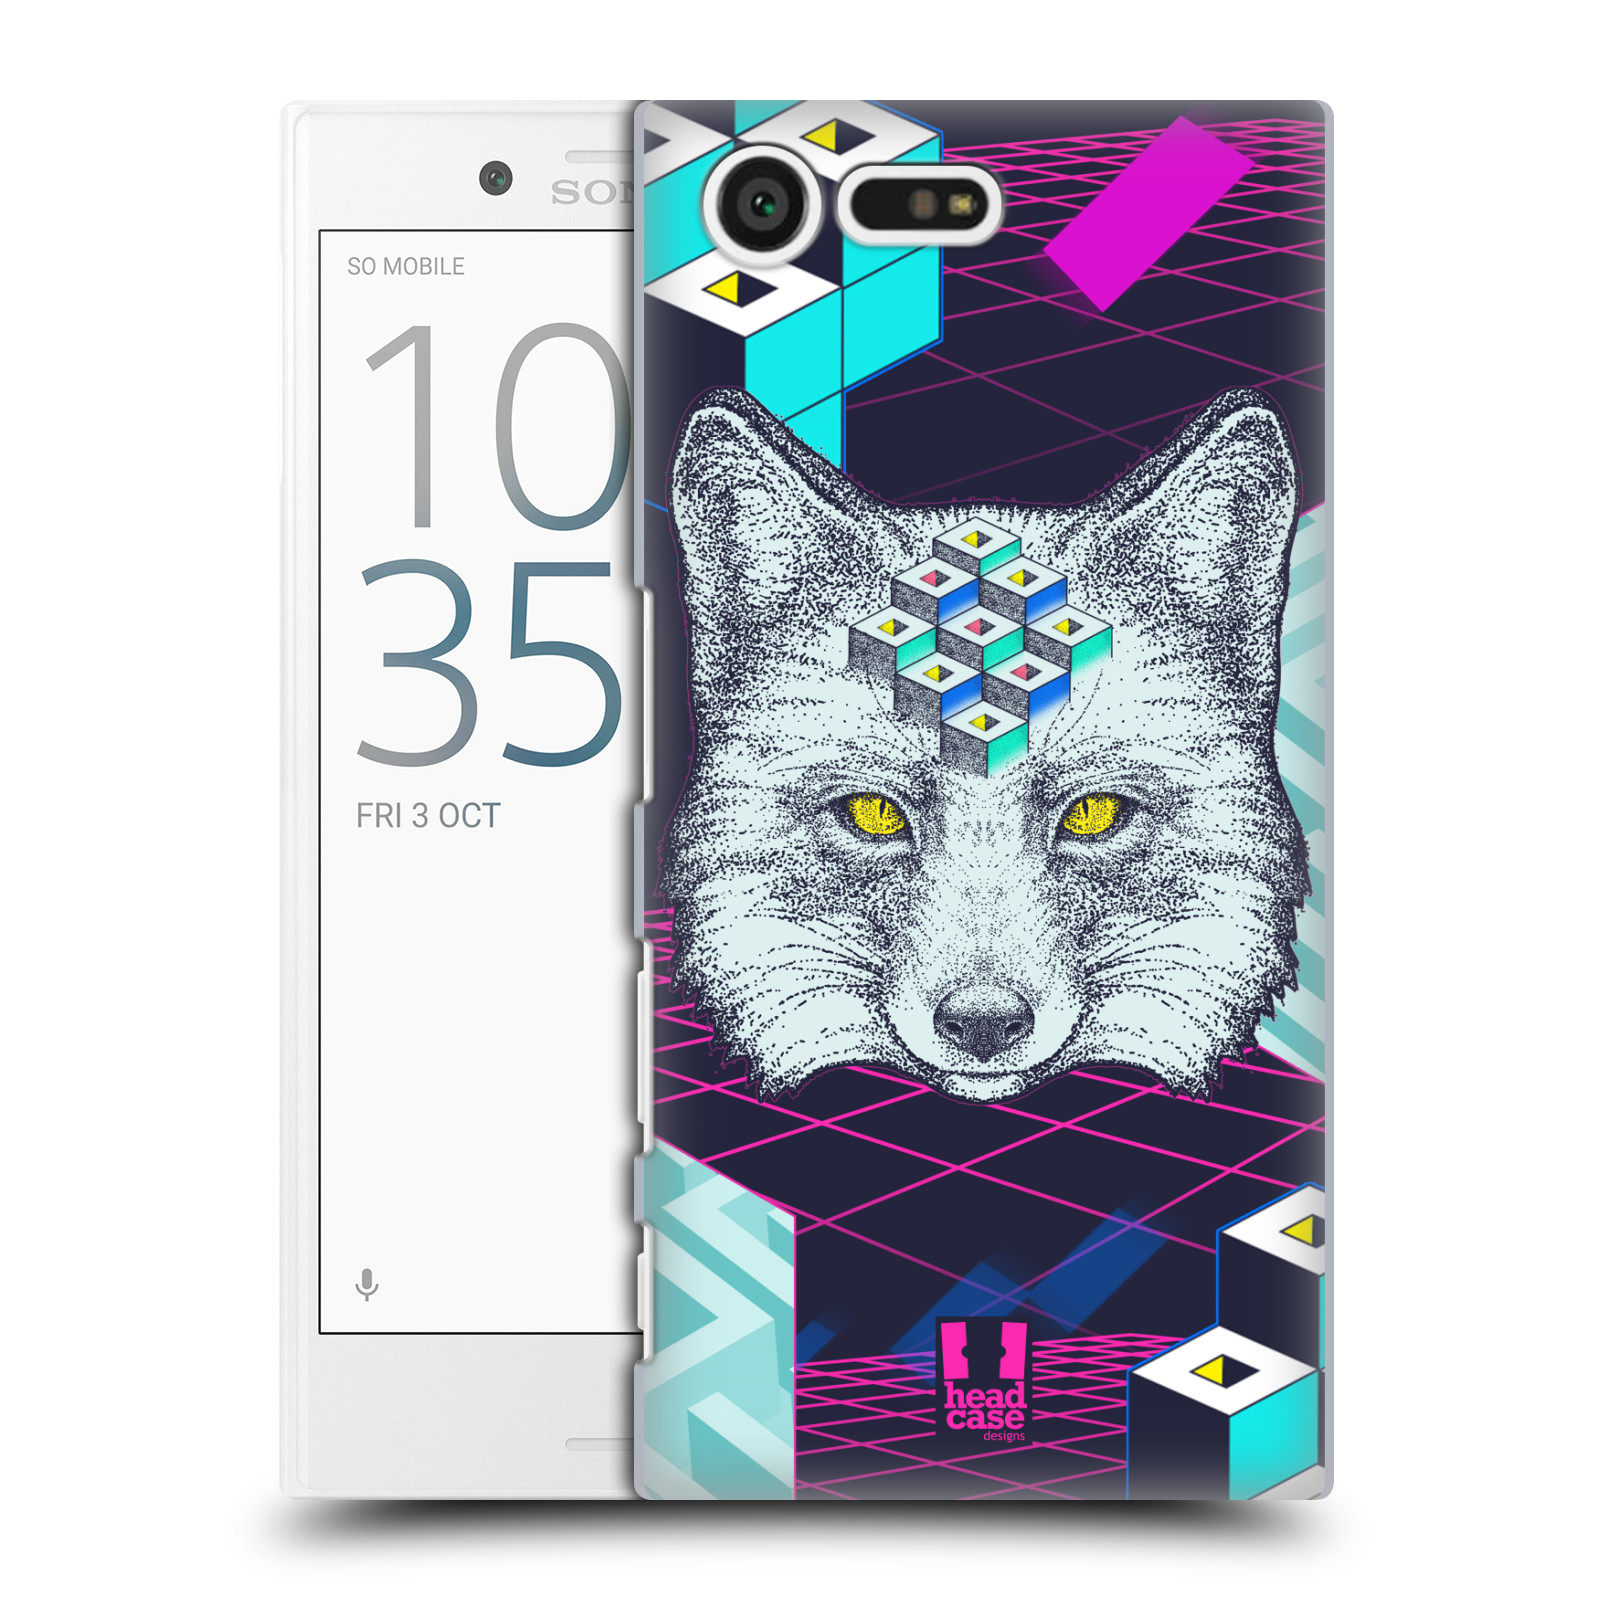 HEAD-CASE-DESIGNS-STIPPLE-ART-2-HARD-BACK-CASE-FOR-SONY-XPERIA-X-COMPACT